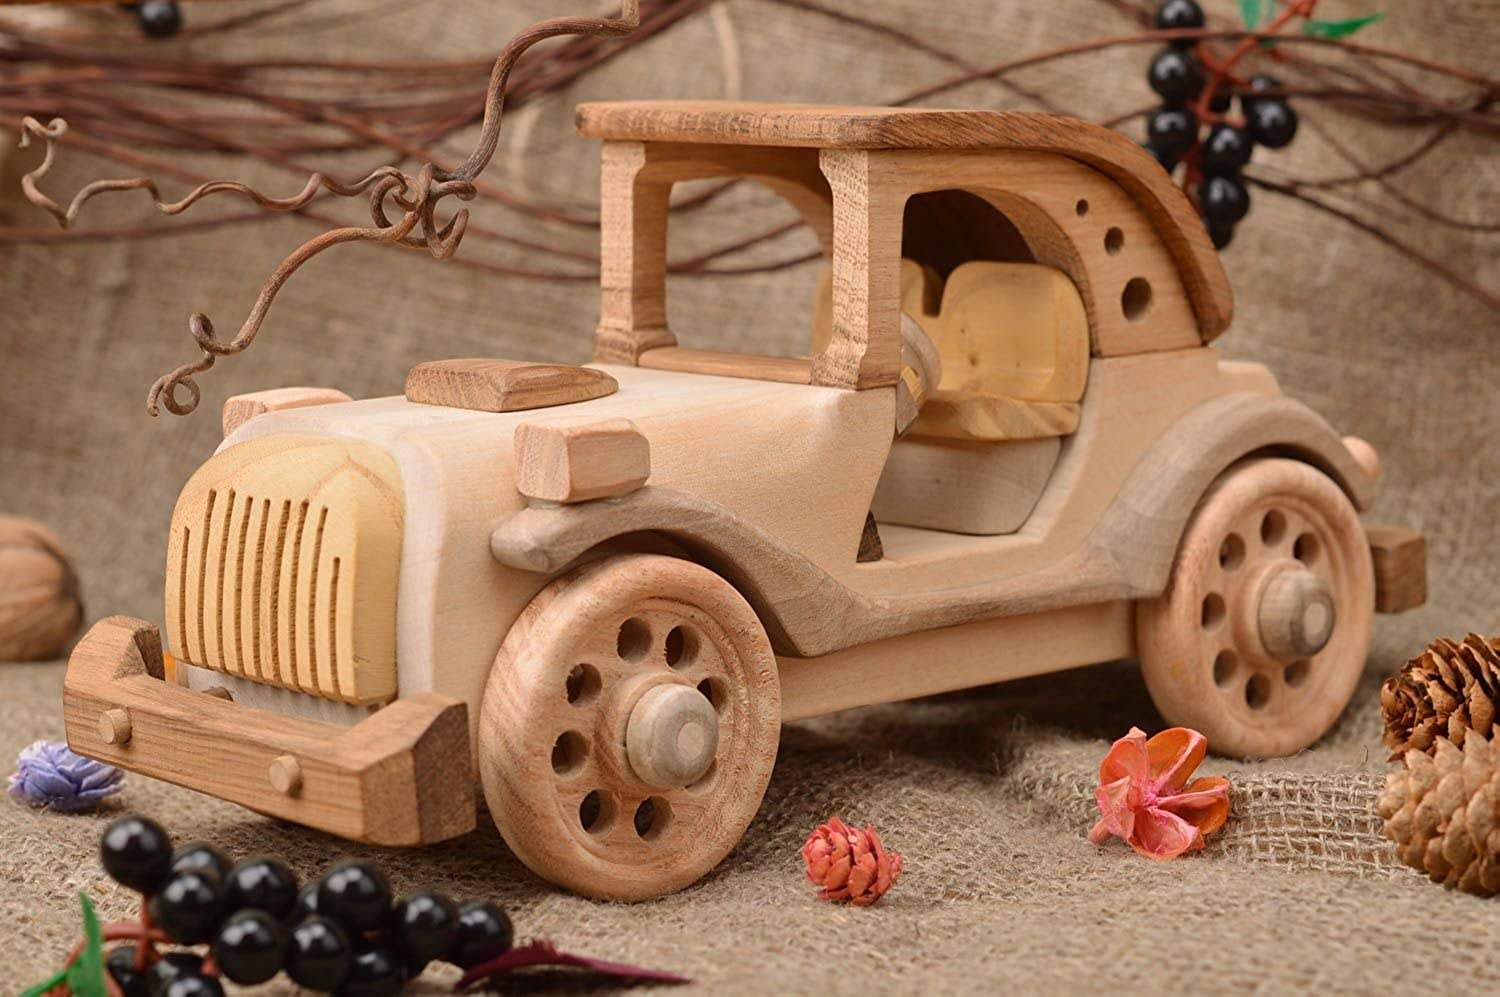 Handmade Designer Collectible Wooden Toy Retro Car Interior Decor